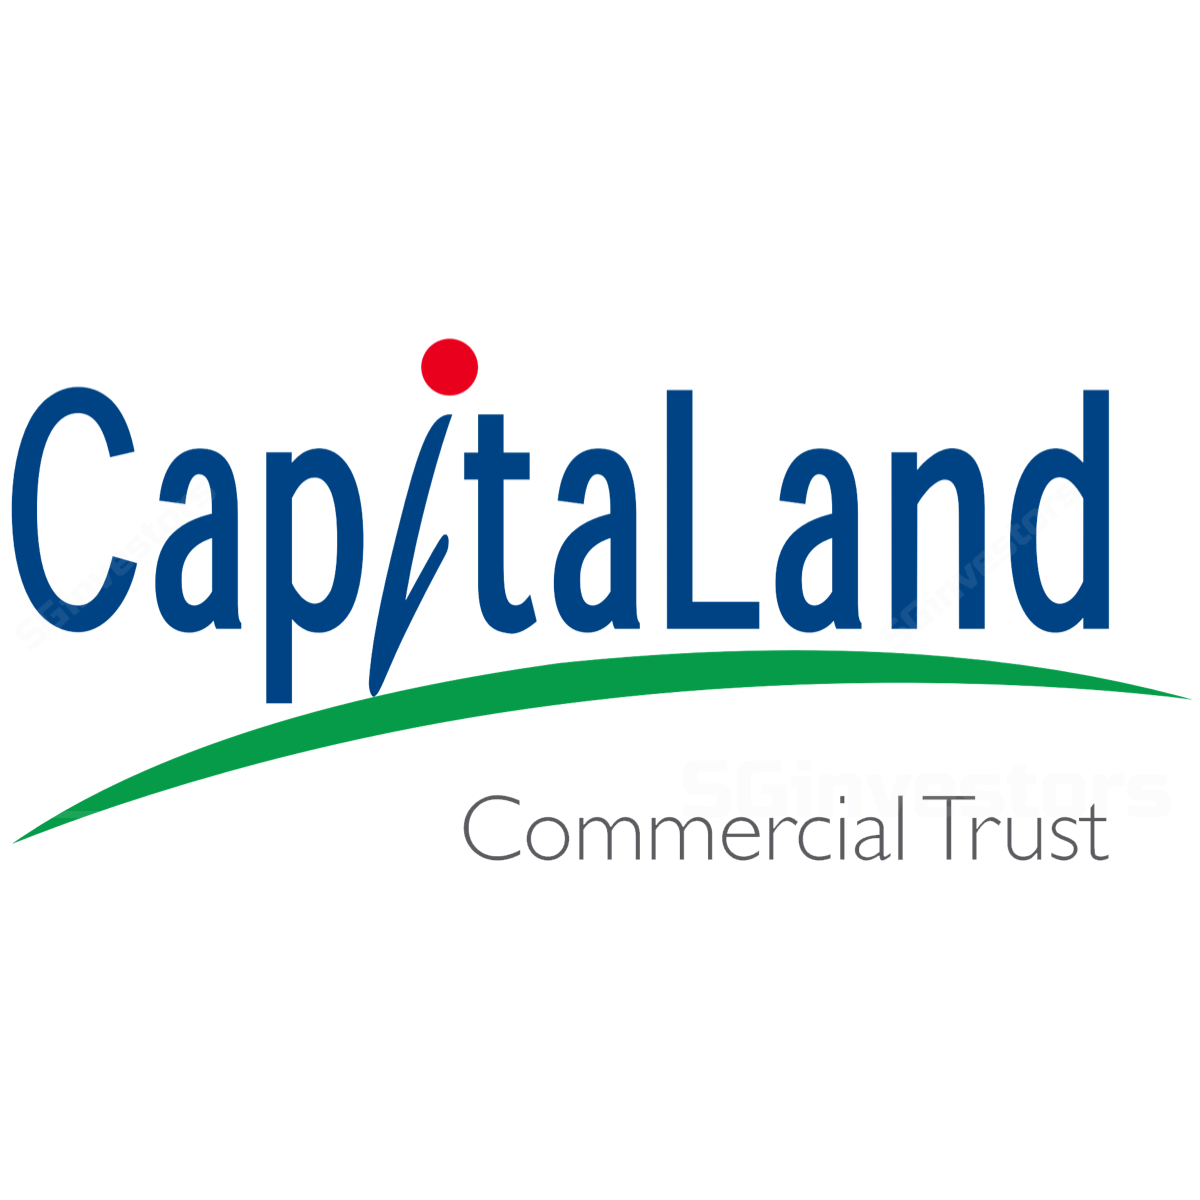 CapitaLand Commercial Trust - CIMB Research 2018-04-25: Boost From Acquisition Growth